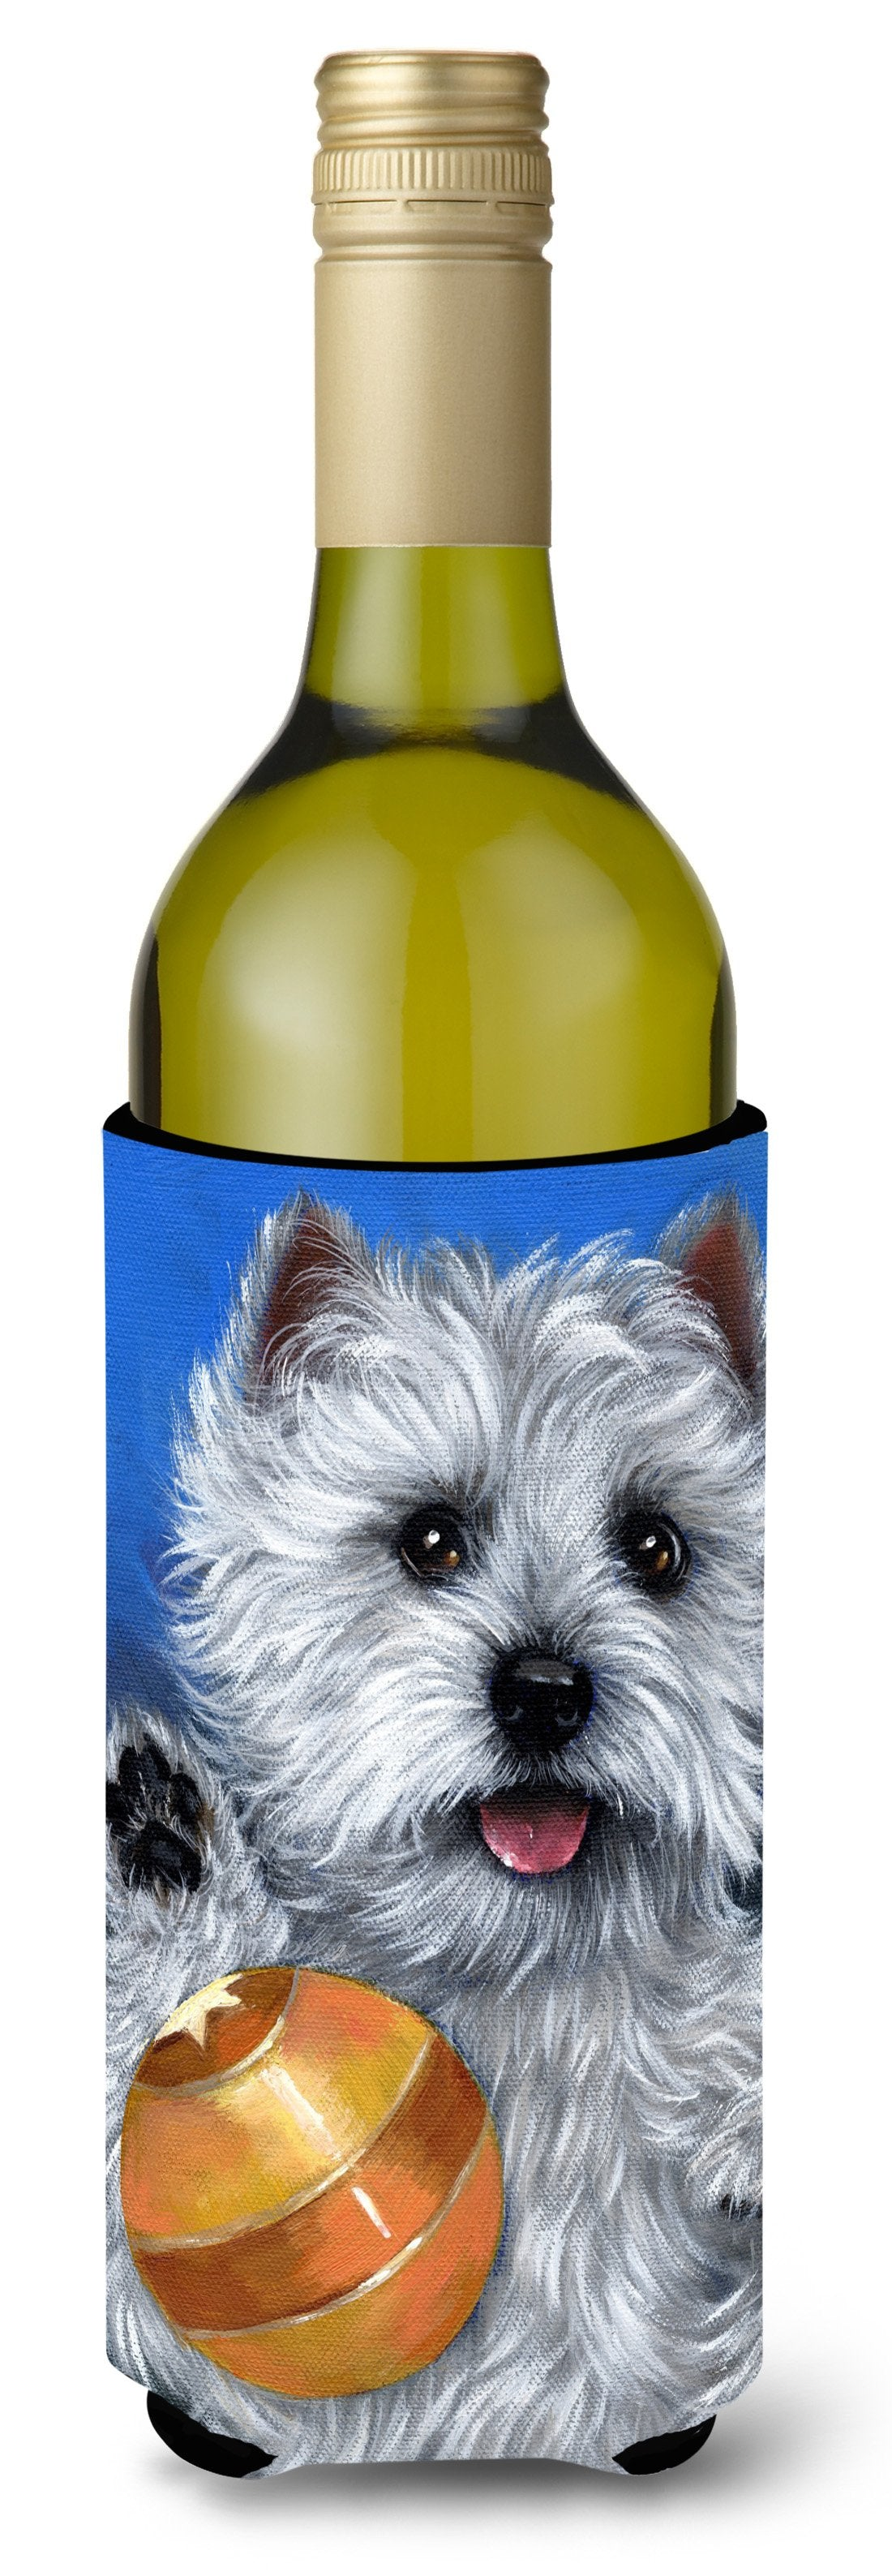 Westie Play Ball Wine Bottle Hugger PPP3223LITERK by Caroline's Treasures